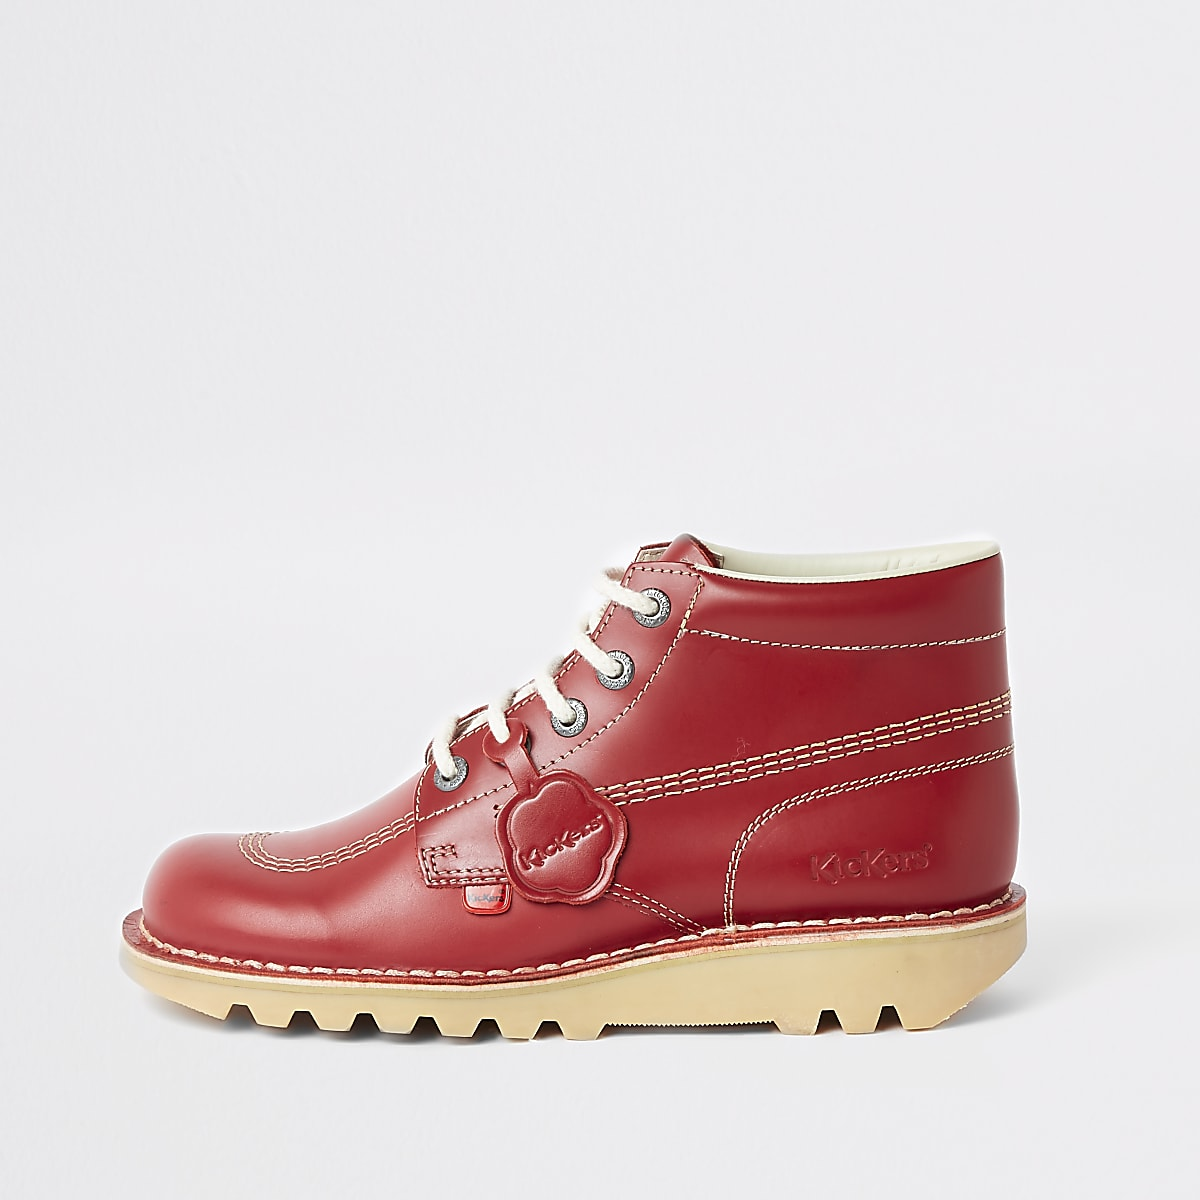 Kickers red leather lace-up boots